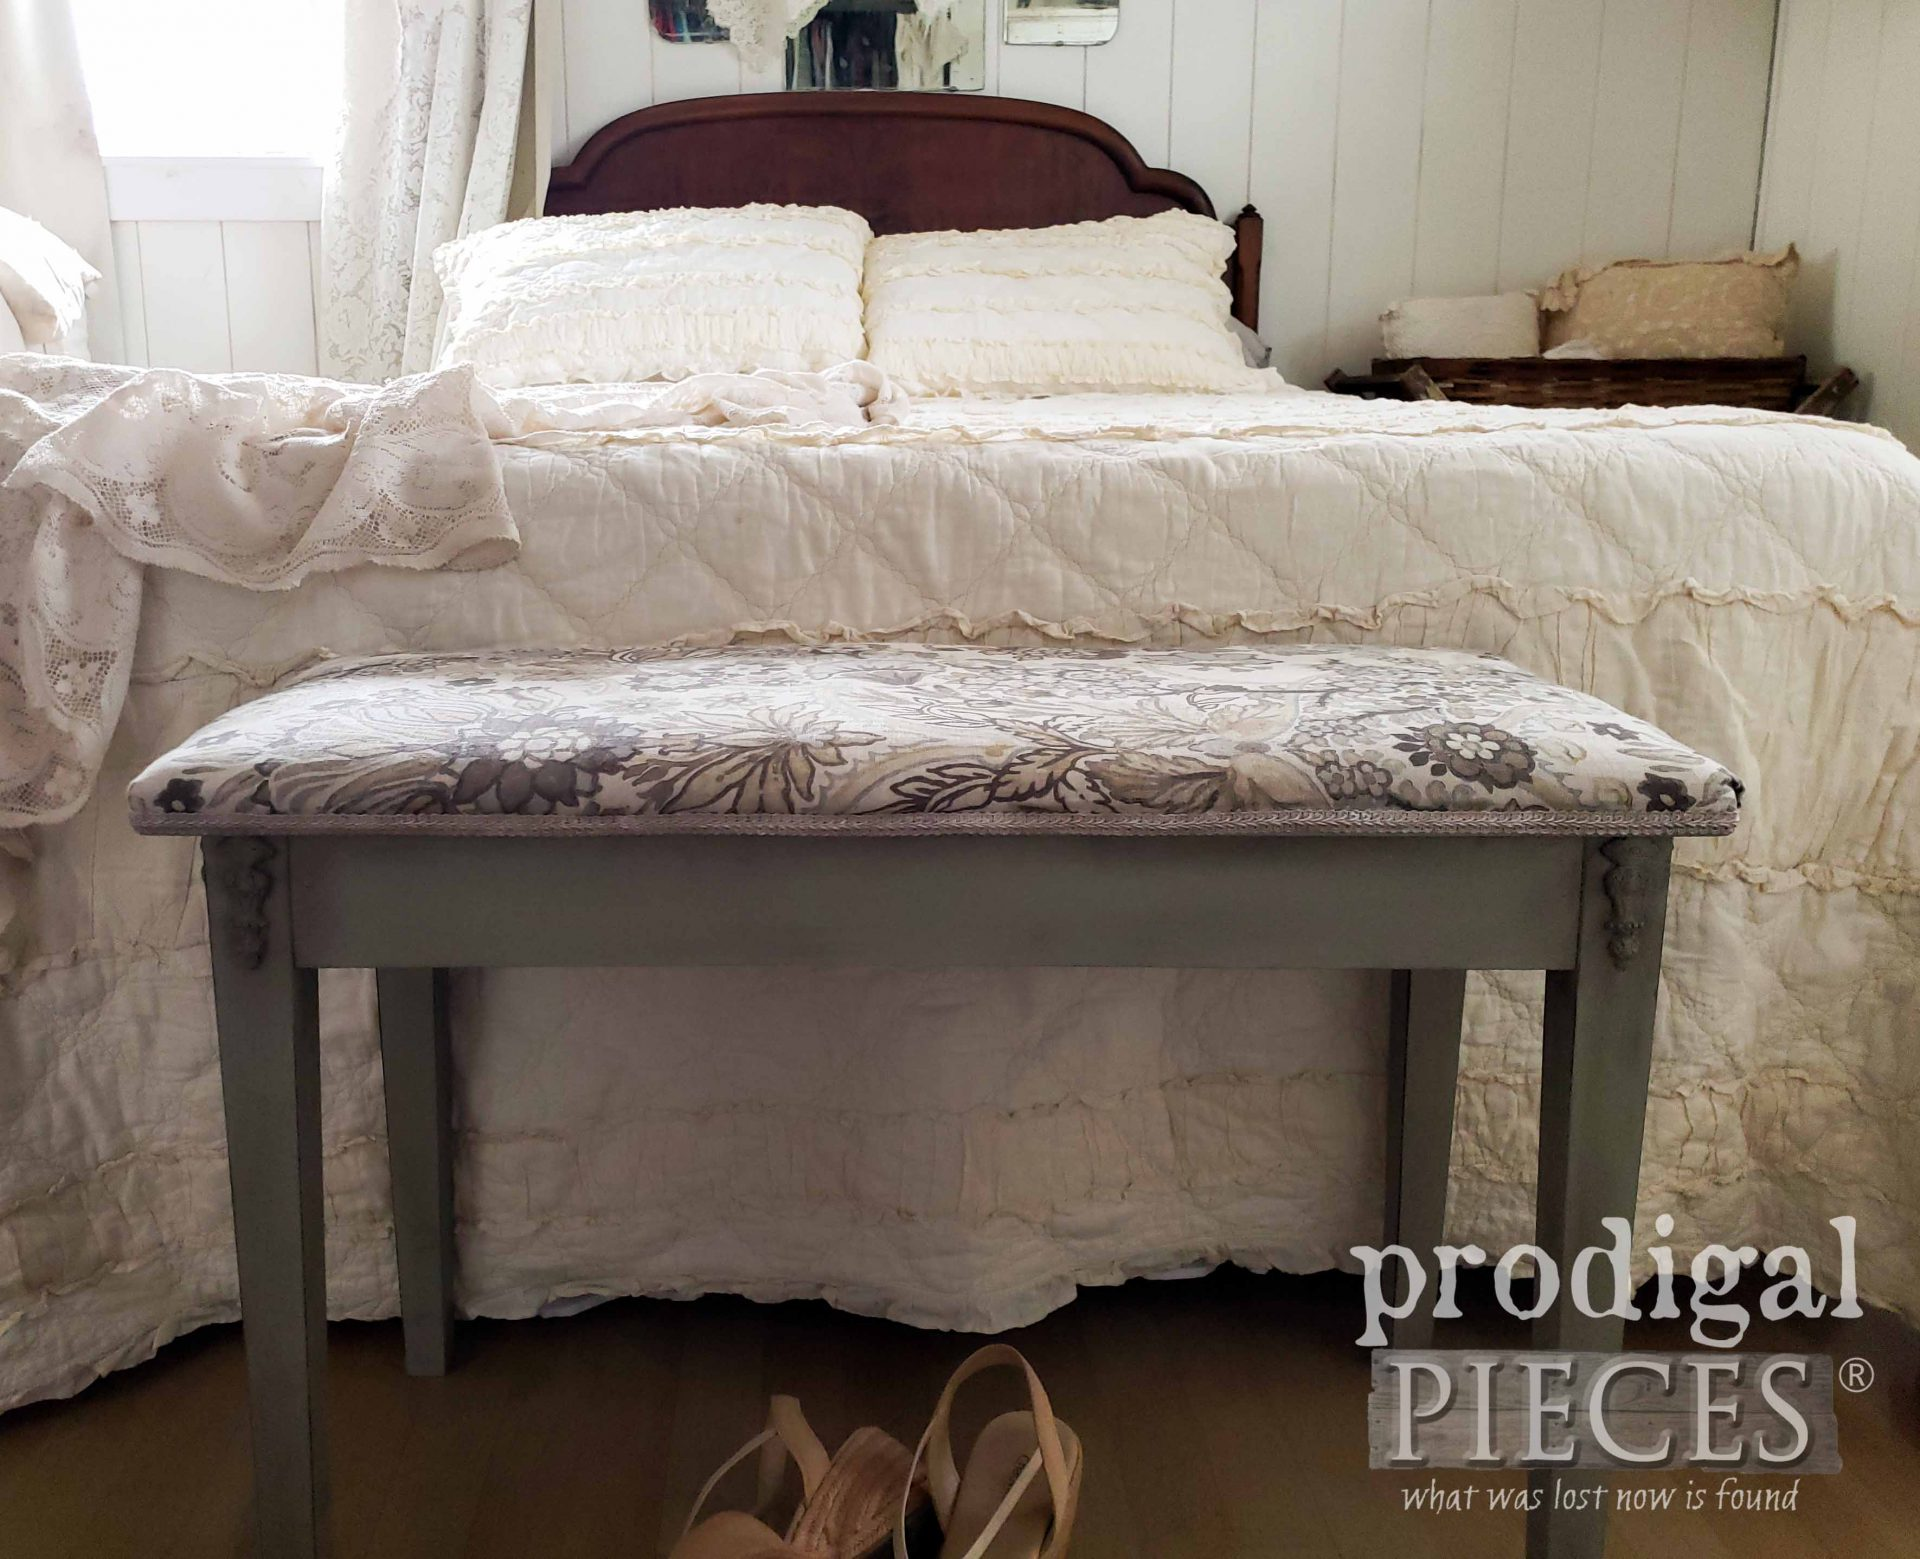 Bedroom Bench Design from Piano Bench by Larissa of Prodigal Pieces | prodigalpieces.com #prodigalpieces #diy #home #homedecor #furniture #vintage